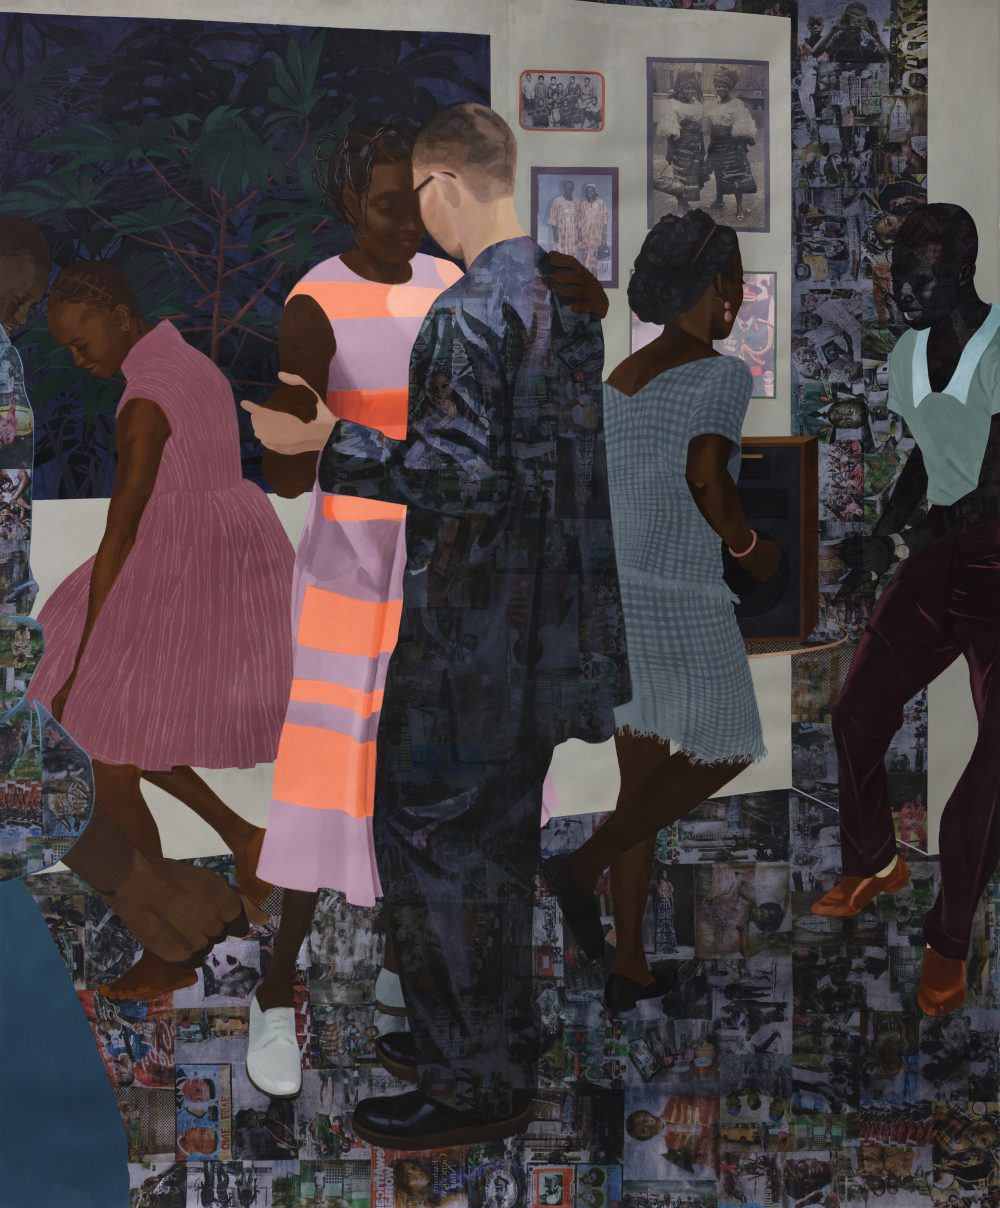 All images: Njideka Akunyili Crosby, Mixed media. Courtesy the artist, Victoria Miro, and David Zwirner